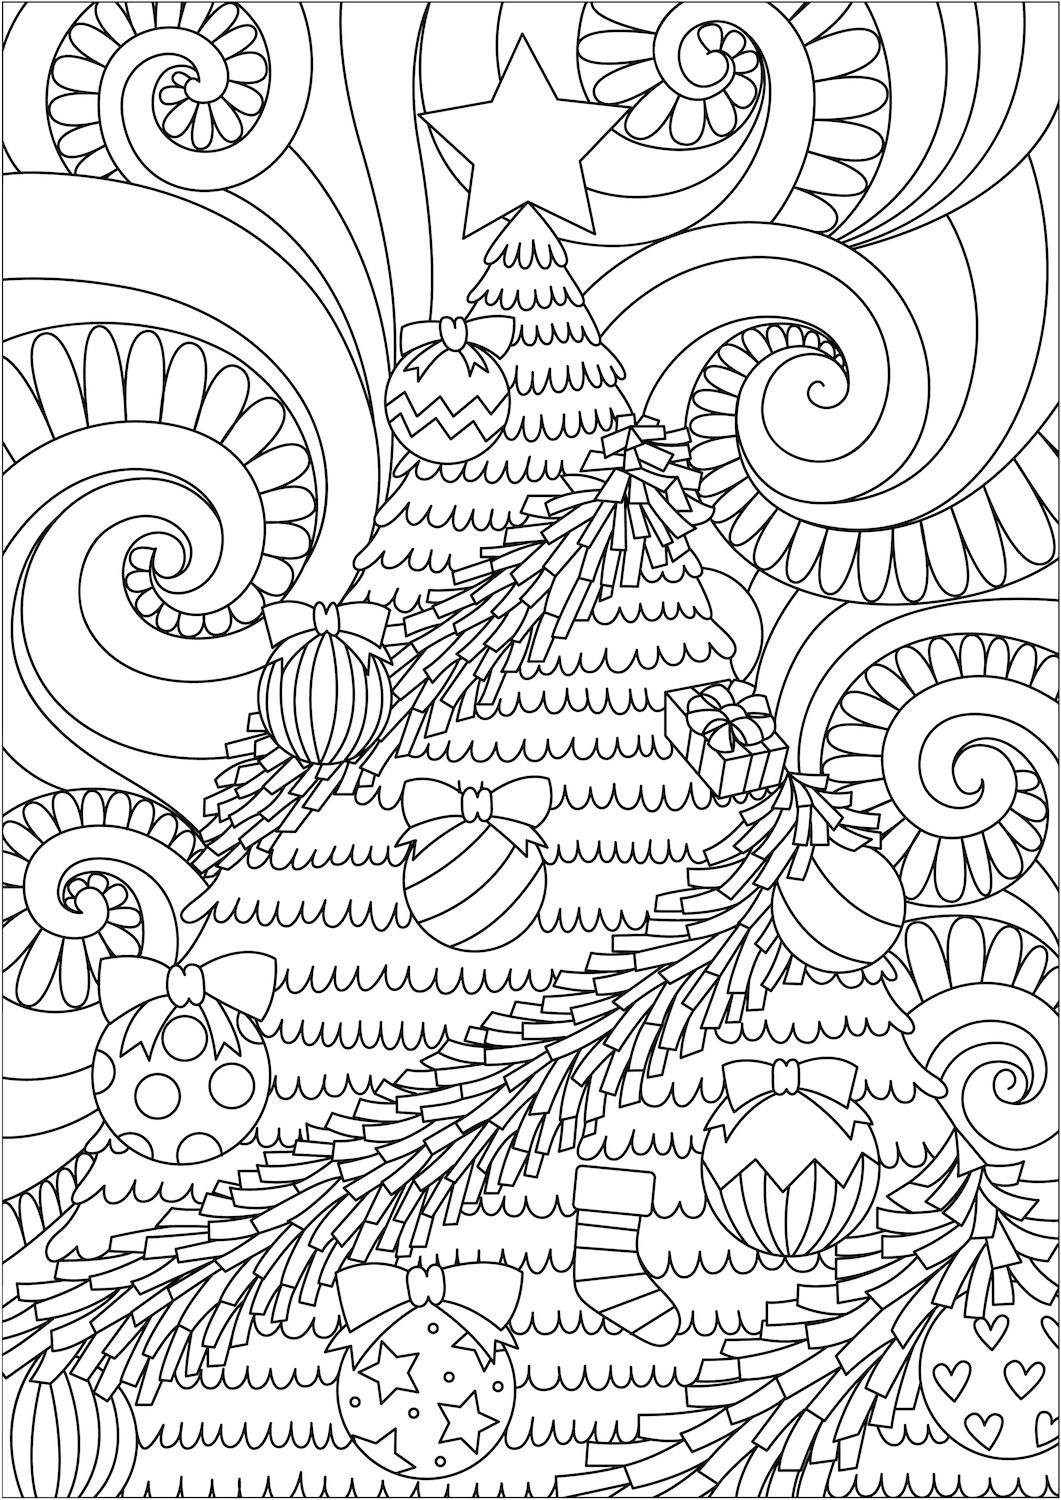 Christmas Coloring Pages Christmas Coloring Sheets Free Christmas Coloring Pages Christmas Coloring Pages